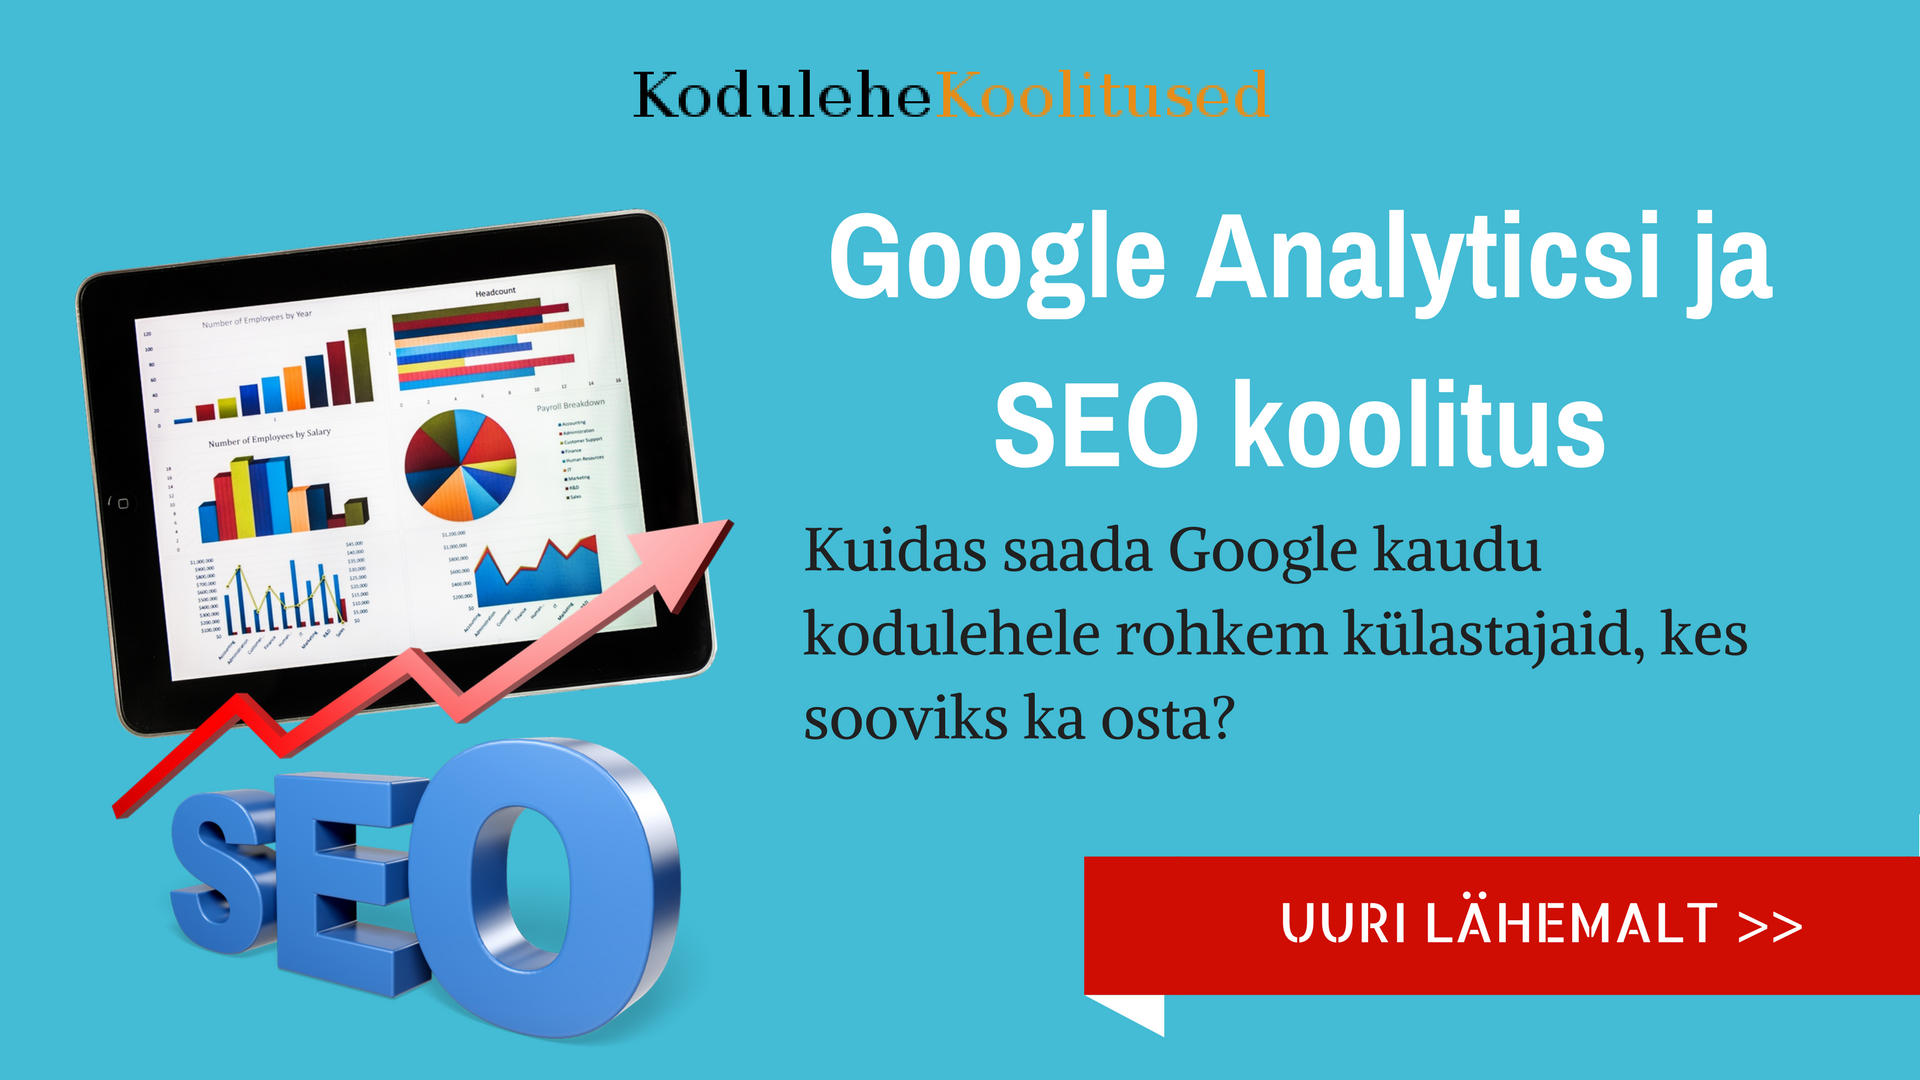 Google Analytics ja SEO